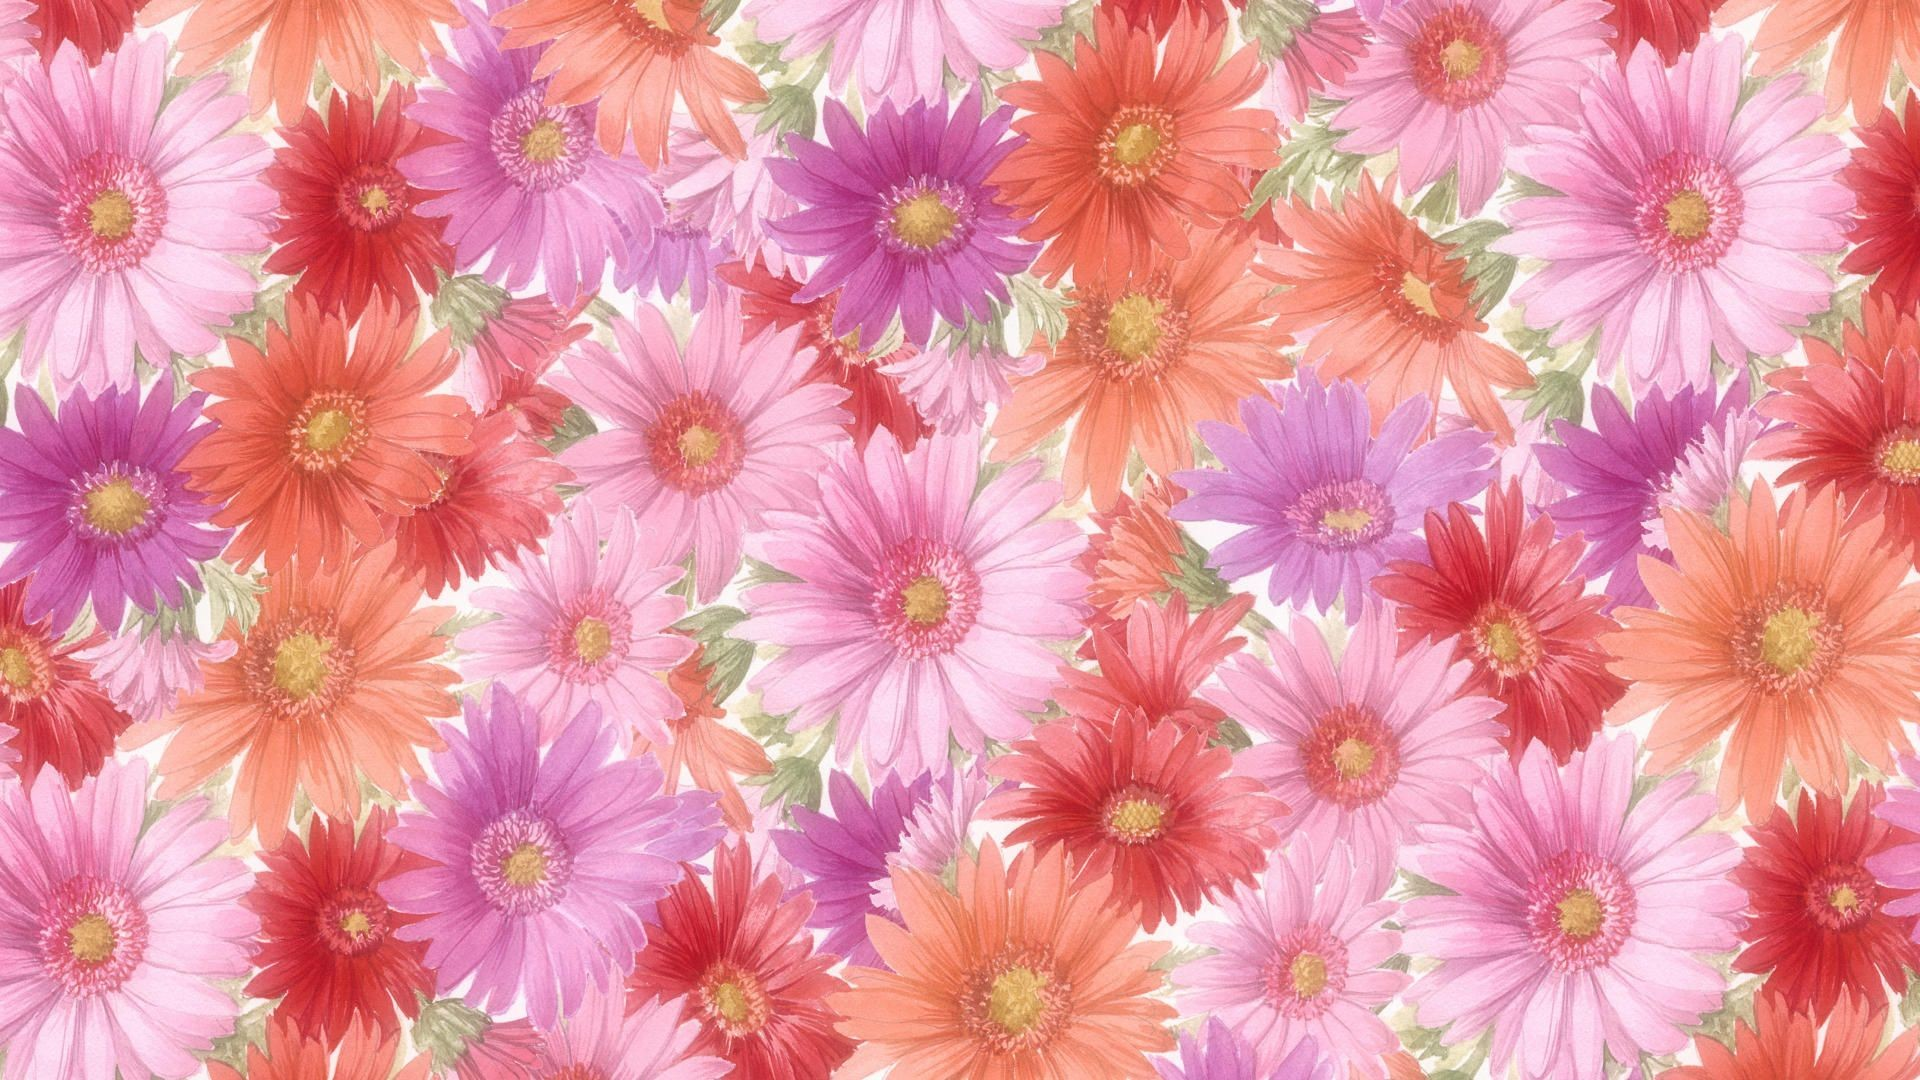 Hd Spring Flower Backgrounds Flowers Healthy